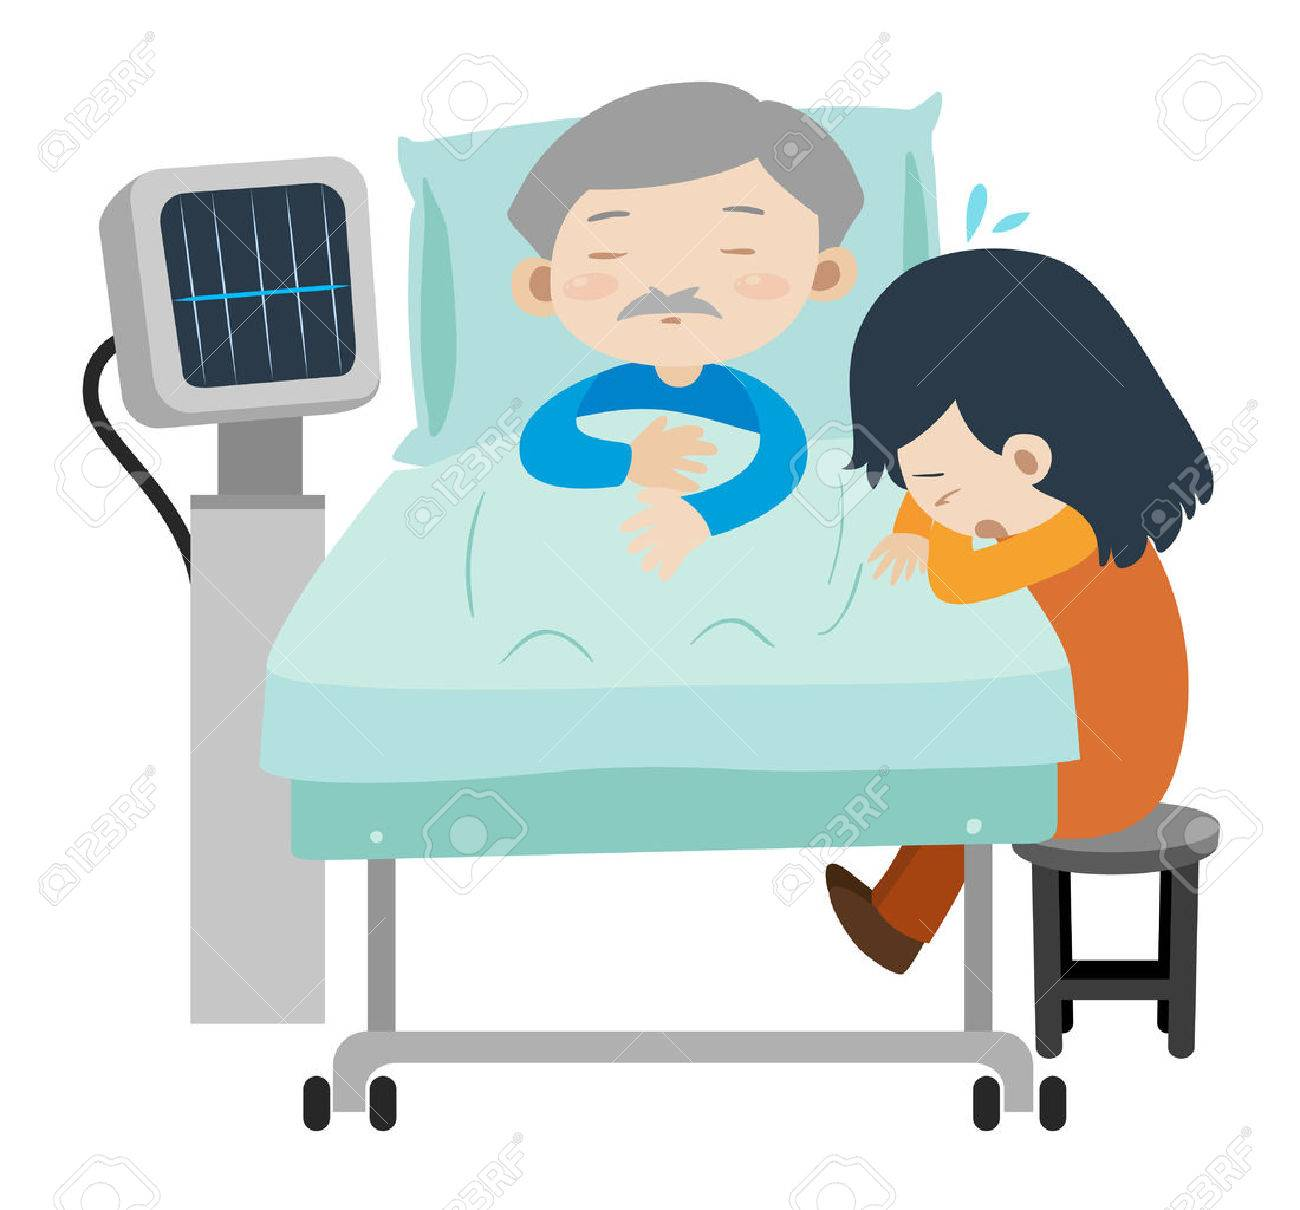 Ordinaire Dead Man On Hospital Bed And Girl Crying Illustration Stock Vector    78183440